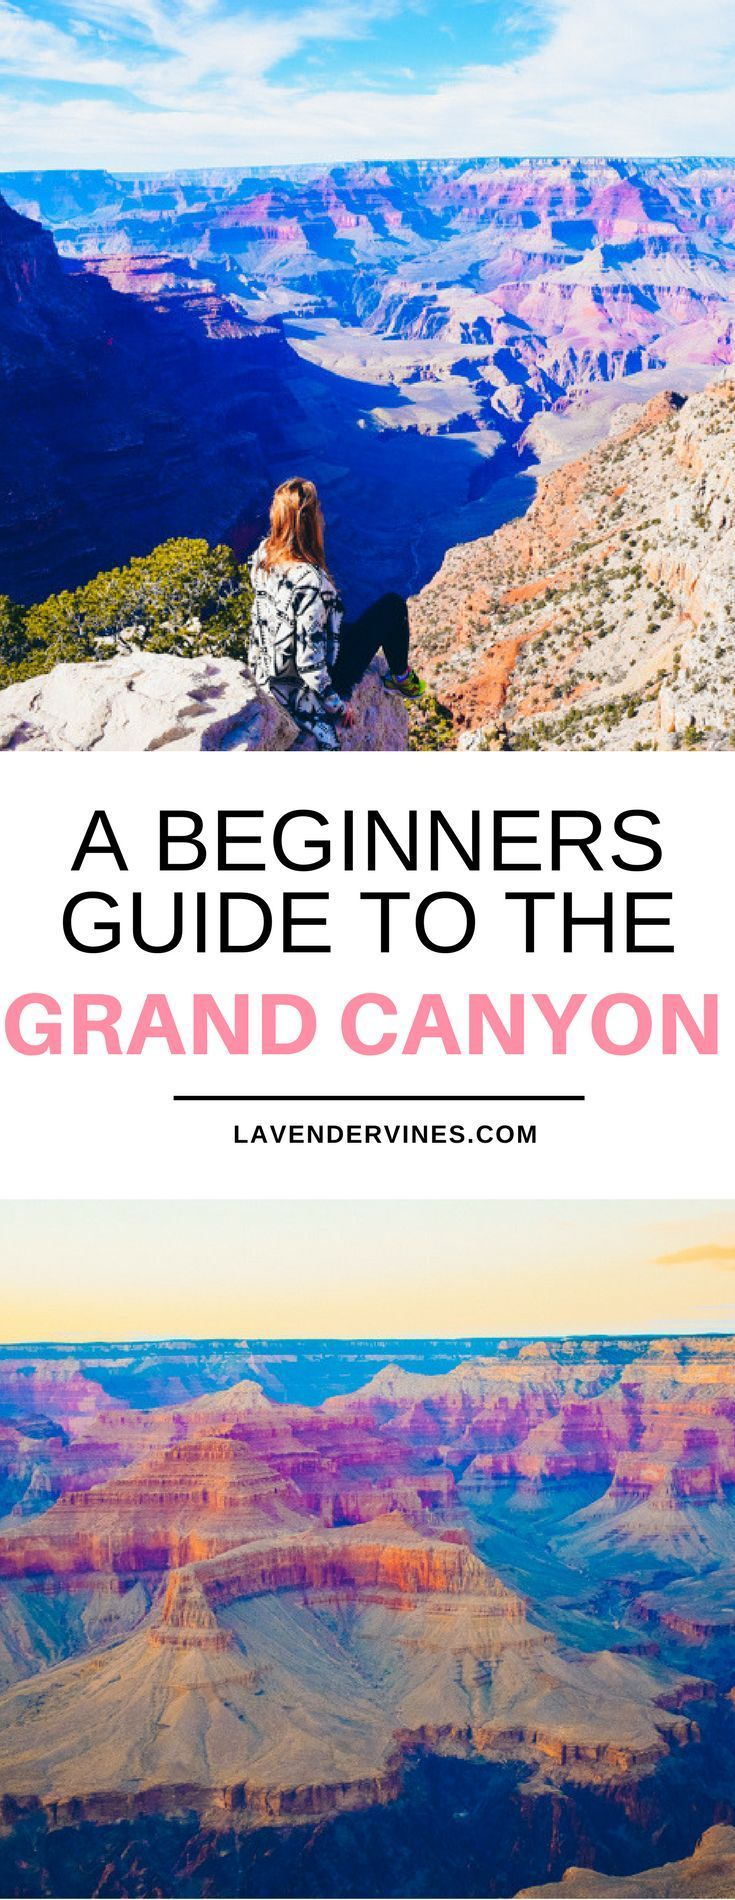 Grand Canyon things to do, Grand Canyon South Rim, Trip to Grand Canyon, Visiting the Grand Canyon, Grand Canyon Arizona, Grand Canyon Hiking, Grand Canyon camping, Grand Canyon vacation #GrandCanyon #TravelDestinationsUsaSpring